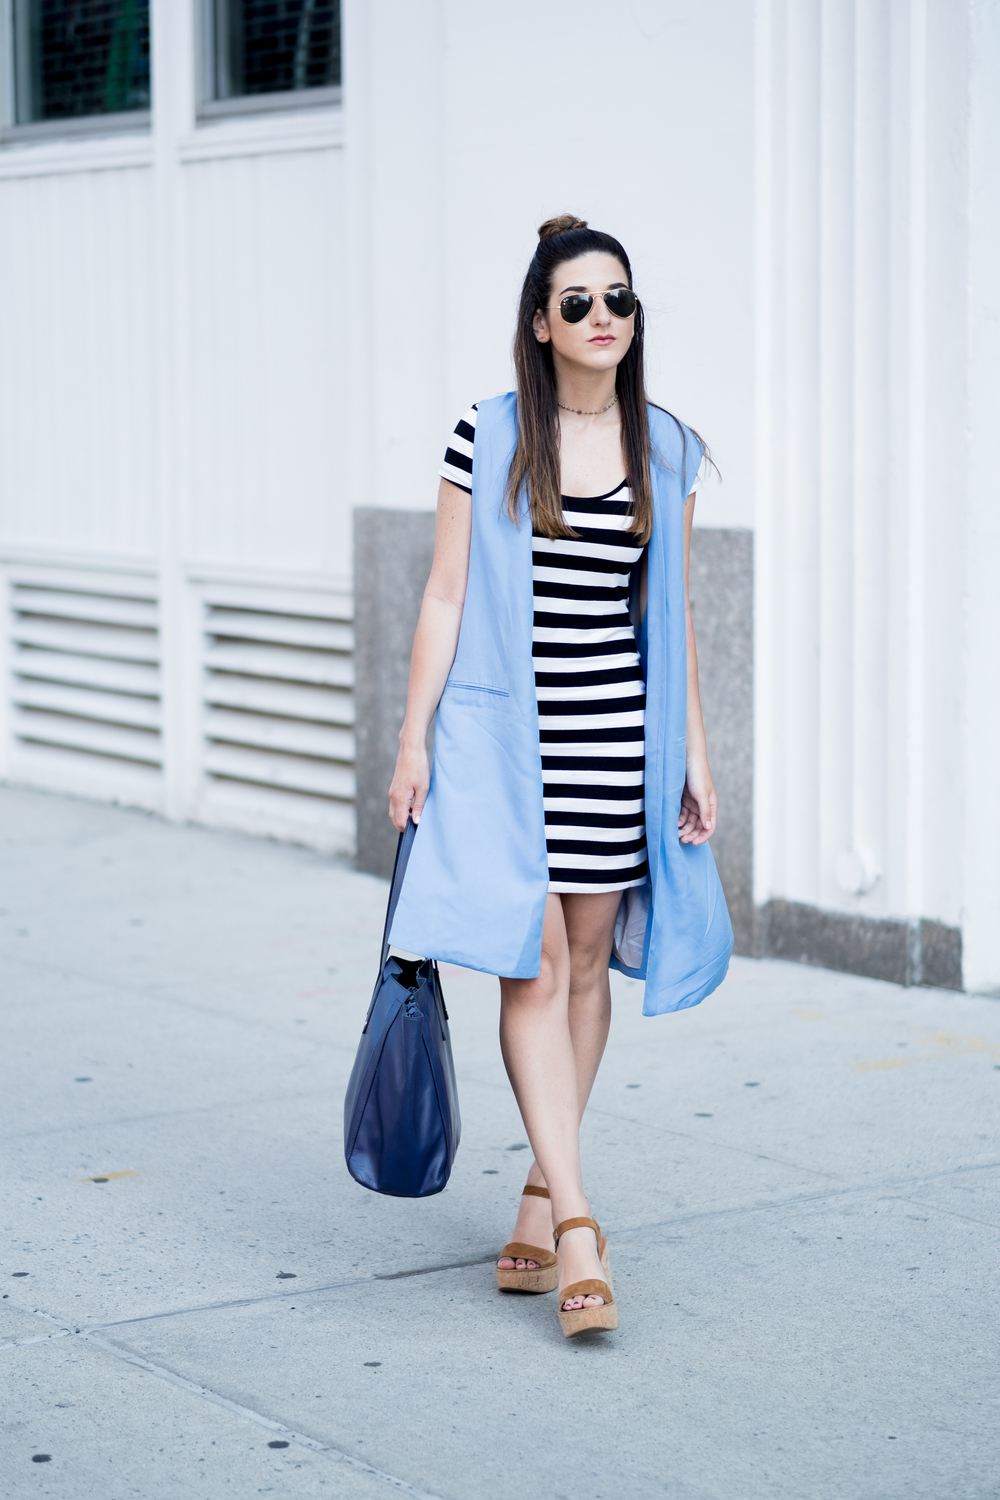 Striped Dress Long Light Blue Vest Louboutins & Love Fashion Blog Esther Santer NYC Street Style Blogger Outfit OOTD Topknot Hair Inspo Girl Women Wedges Dolce Vita Bag Ivanka Trump Soho Tote Aviator Ray-Ban Sunglasses Trendy Choker Photoshoot Summer.jpg